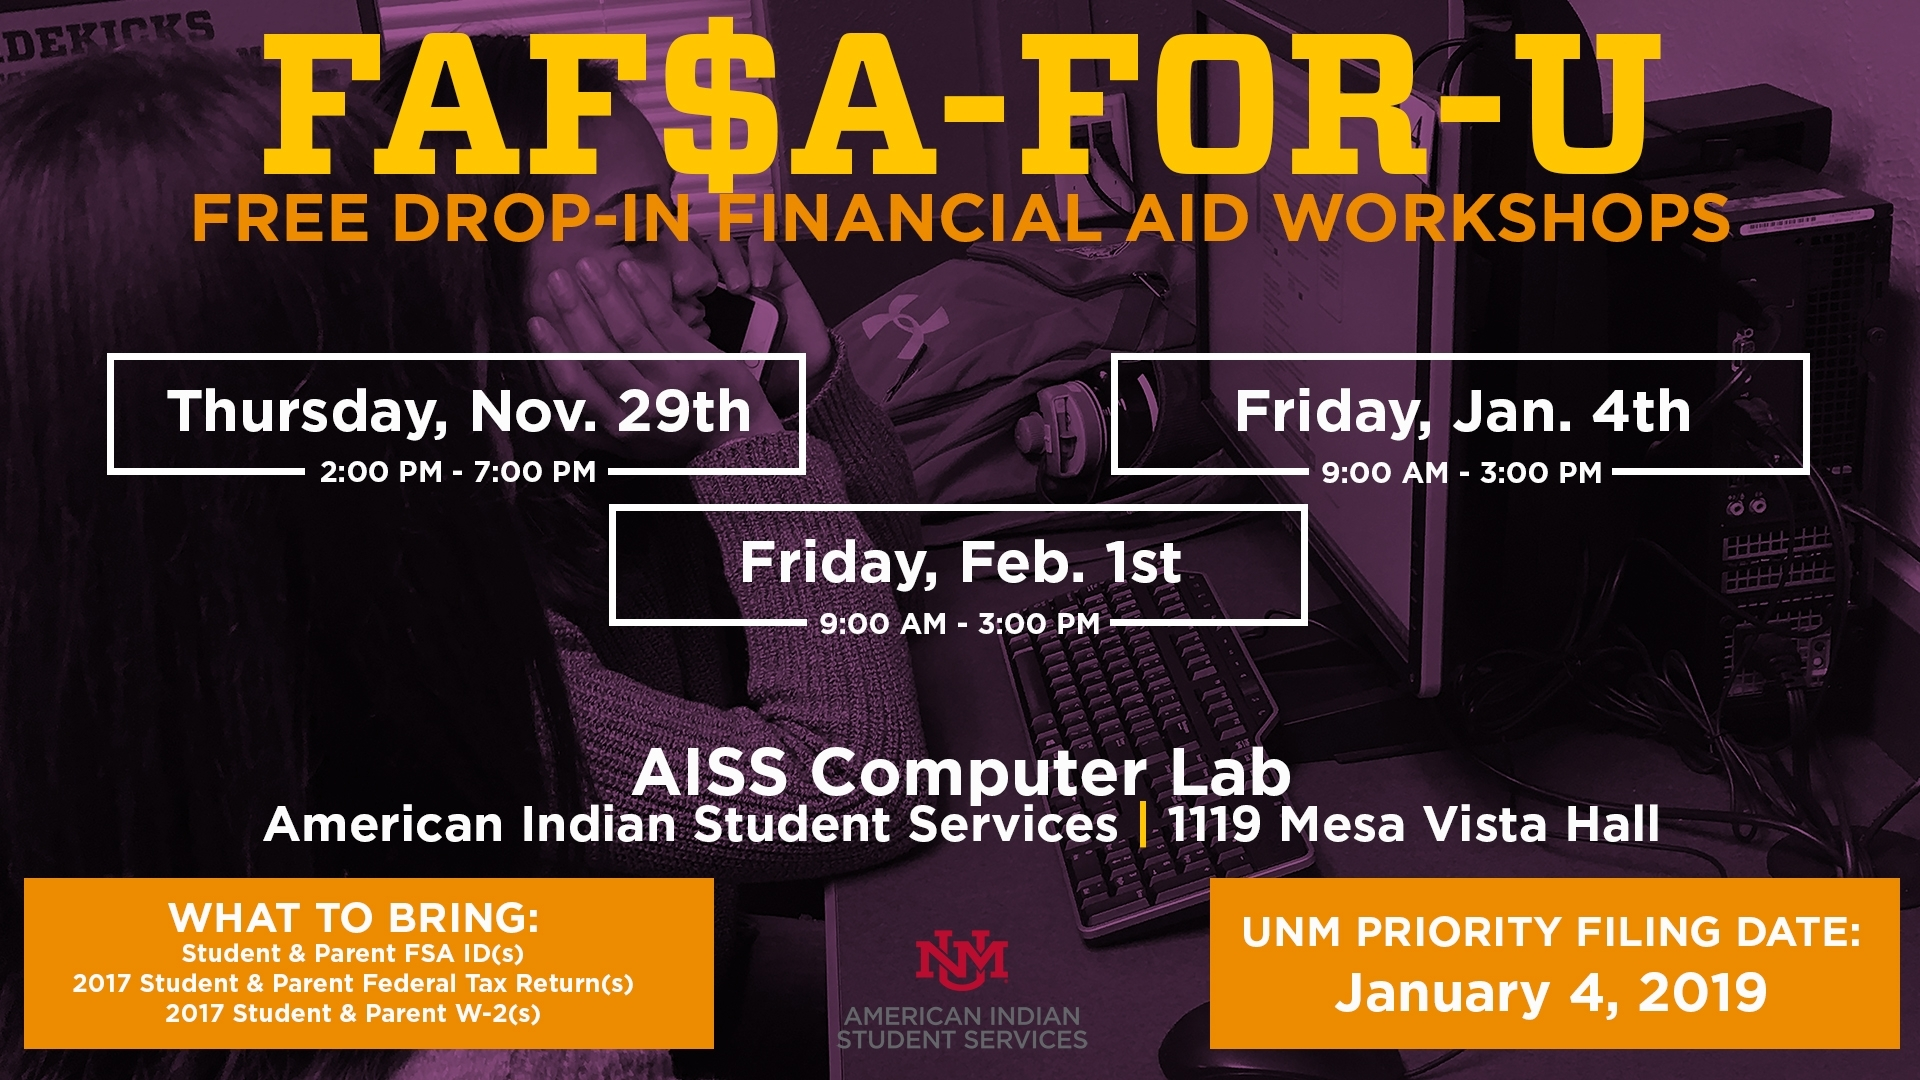 Unm Events Calendar - Faf$A-For-U Workshop in 2019 2020 Calendar Unm